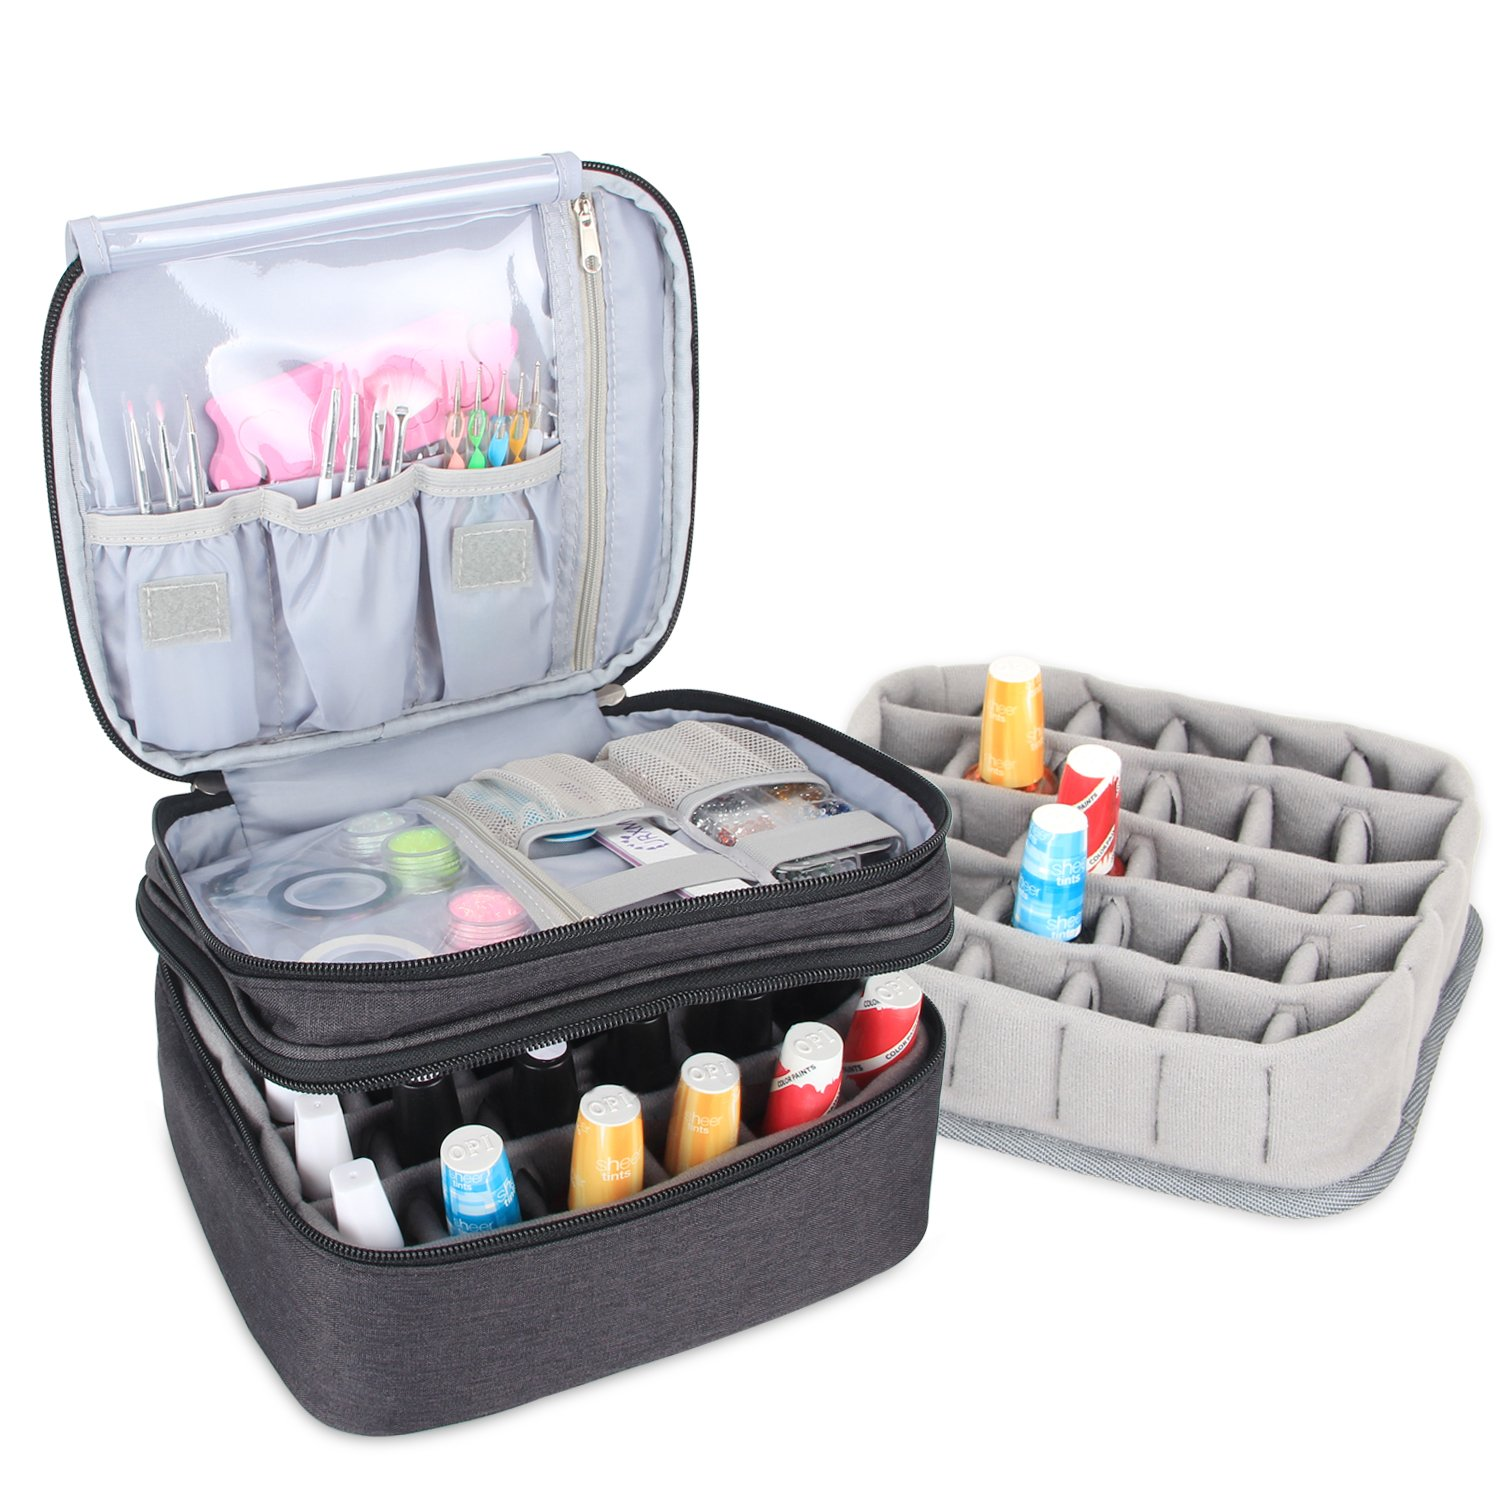 Luxja Nail Polish Carrying Case - Holds 30 Bottles (15ml - 0.5 fl.oz), Double-layer Organizer for Nail Polish and Manicure Set, Black